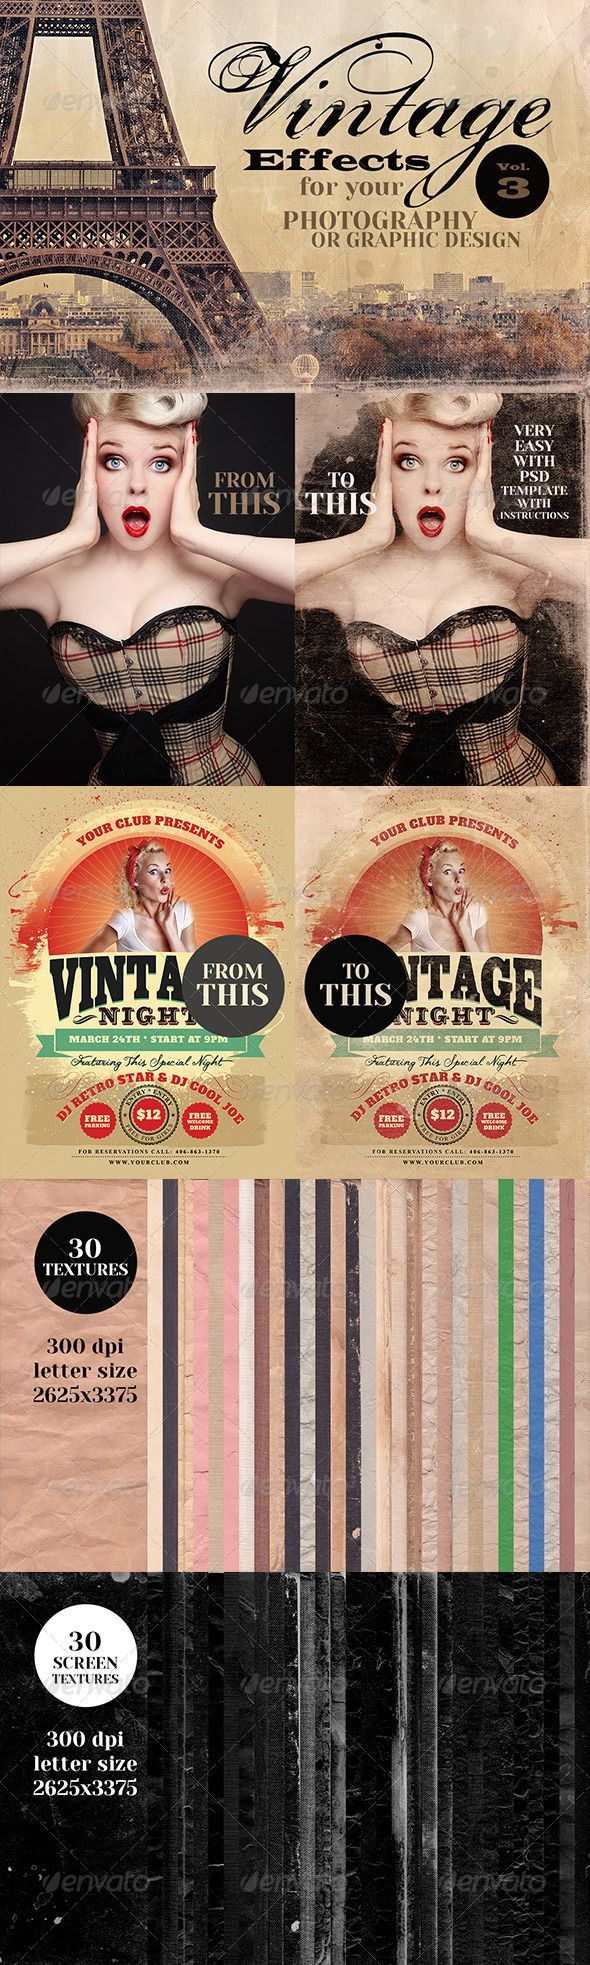 Vintage Effects for Photo, Designs 3 by cruzine2 Very easy to use vintage grunge effects for your photography or graphic designs. In this package: - 30 vintage paper and book cove